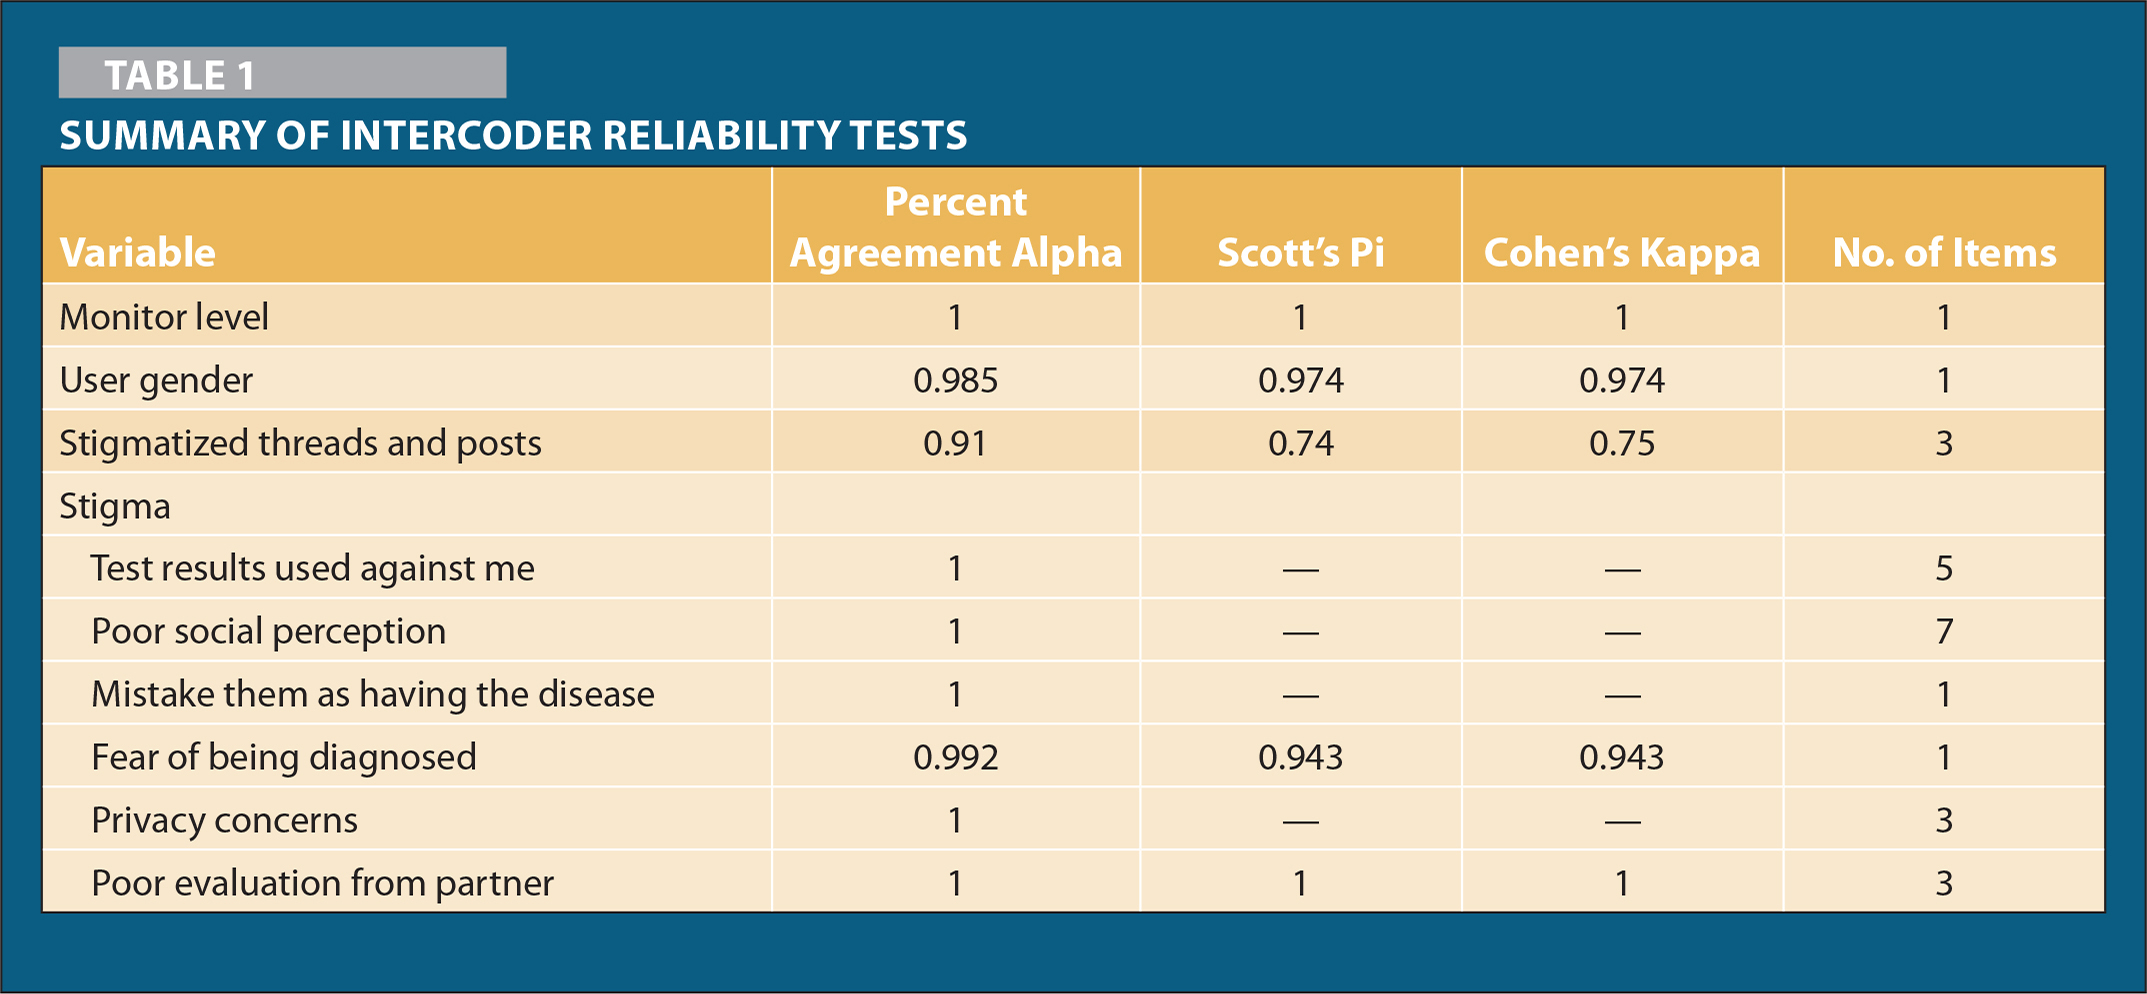 Summary of Intercoder Reliability Tests